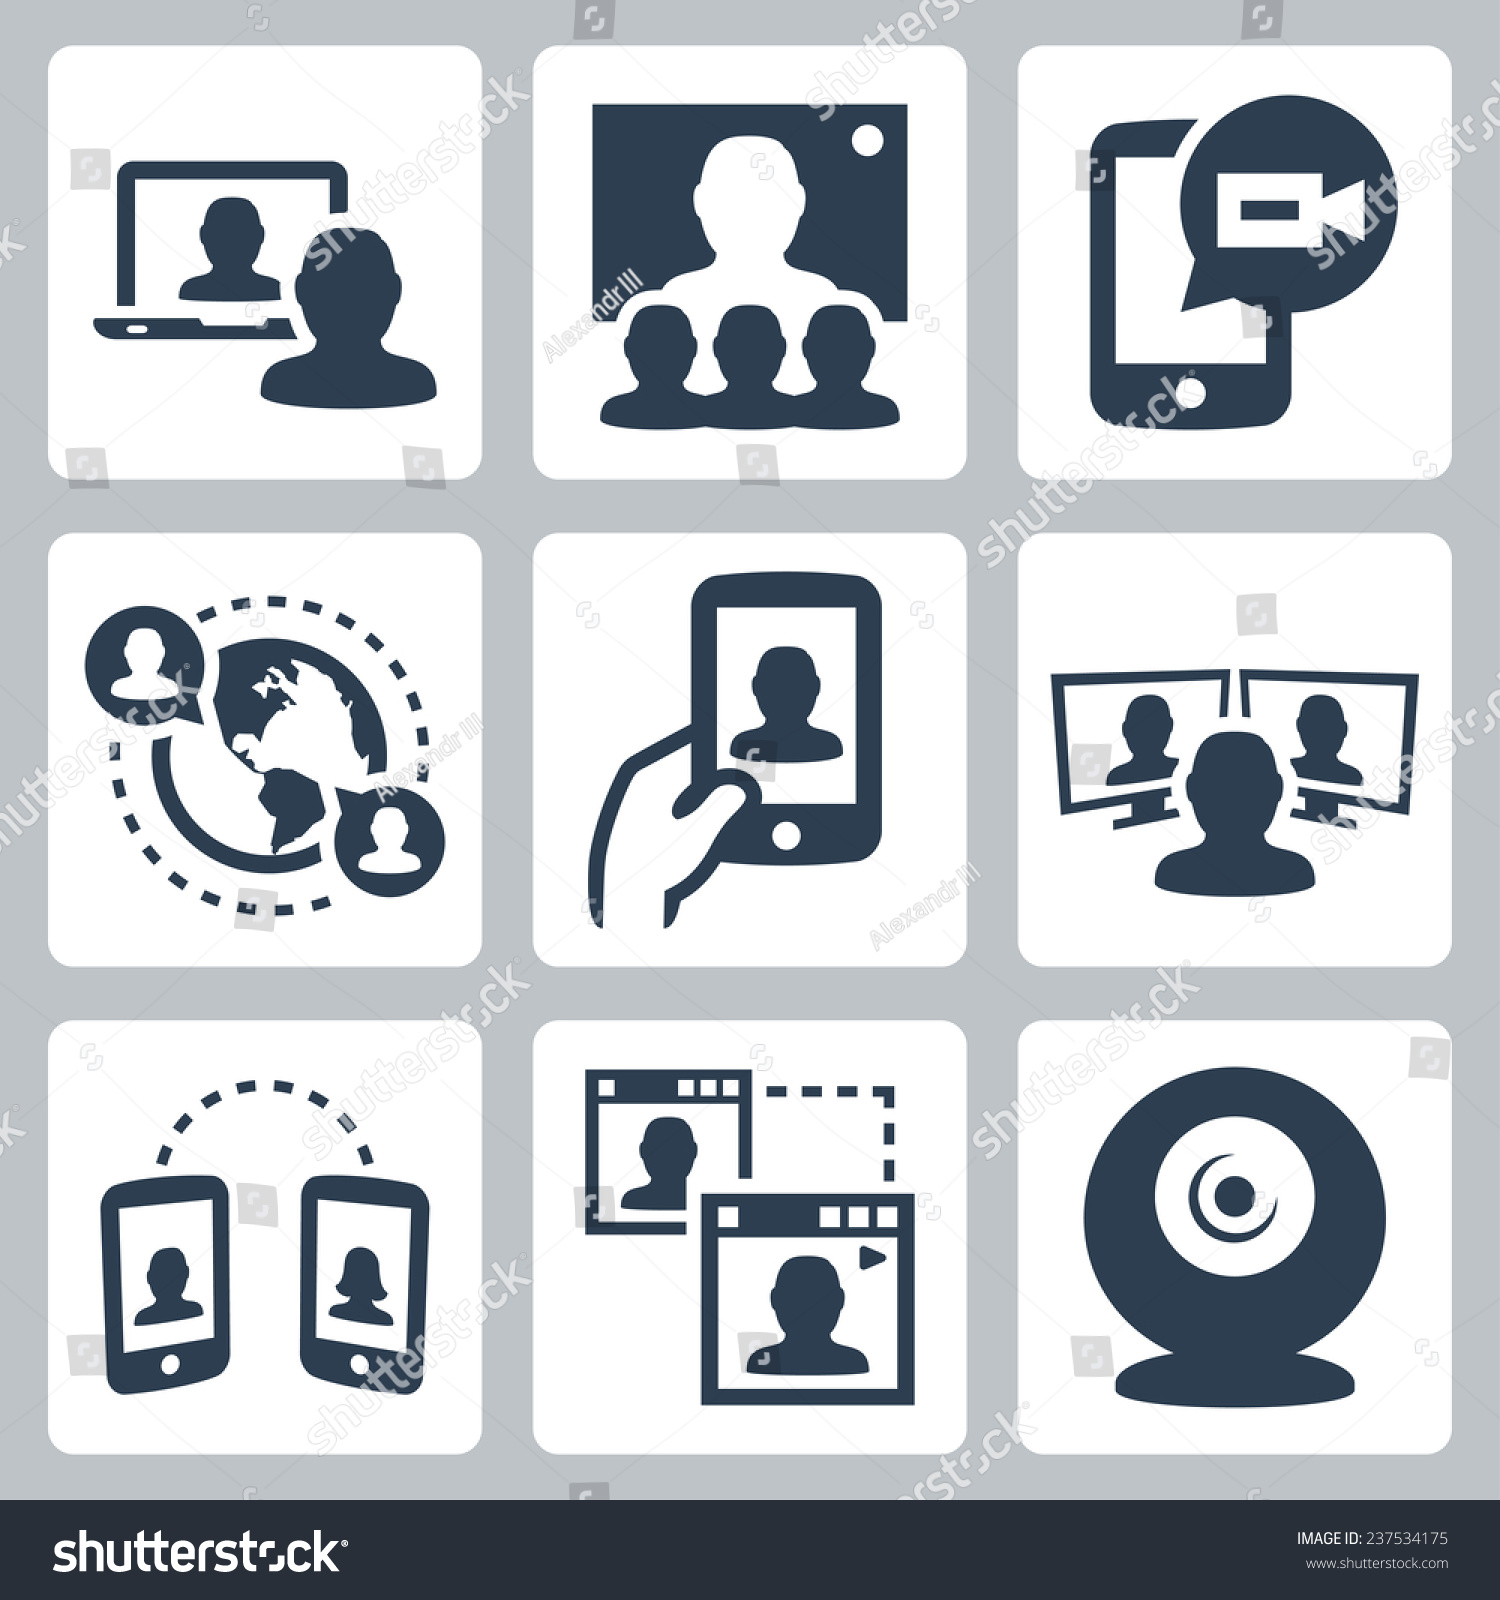 Video Conference Communication Related Vector Icon Stock ...